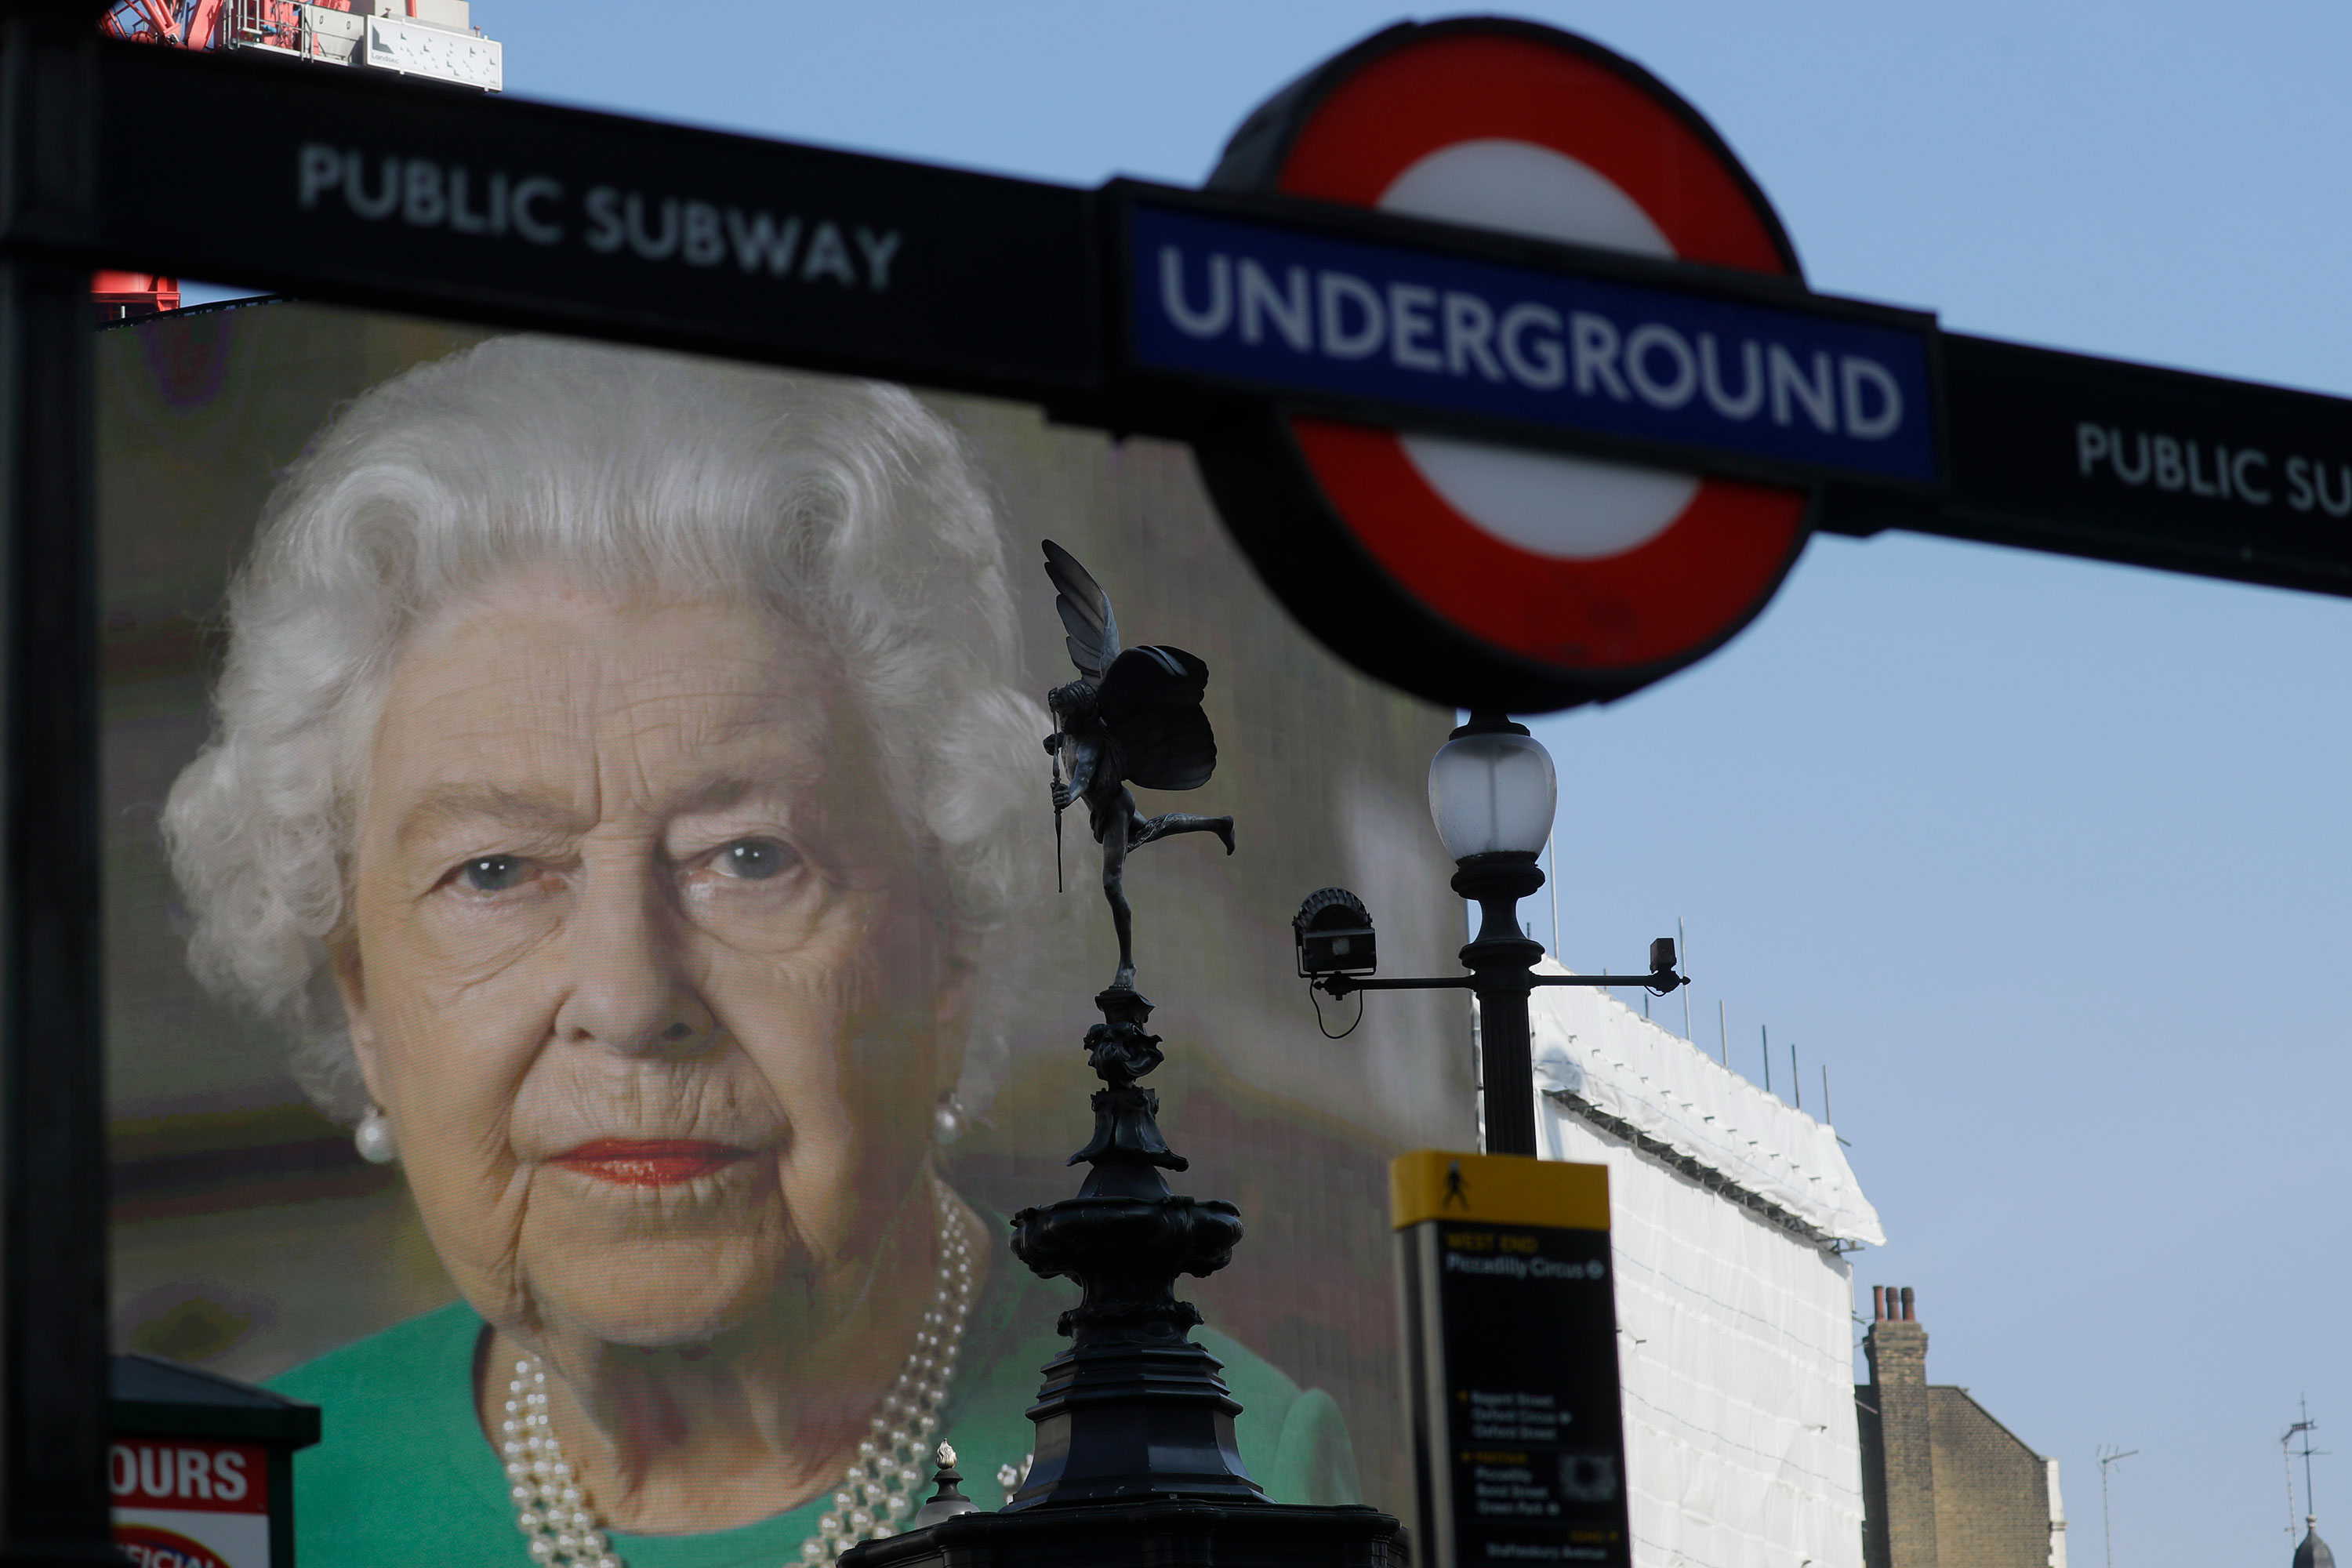 An image of Britain's Queen Elizabeth II and quotes from her historic television broadcast commenting on the coronavirus pandemic are displayed on a big screen behind the Eros statue and a London underground train station entrance at Piccadilly Circus in London on April 9.